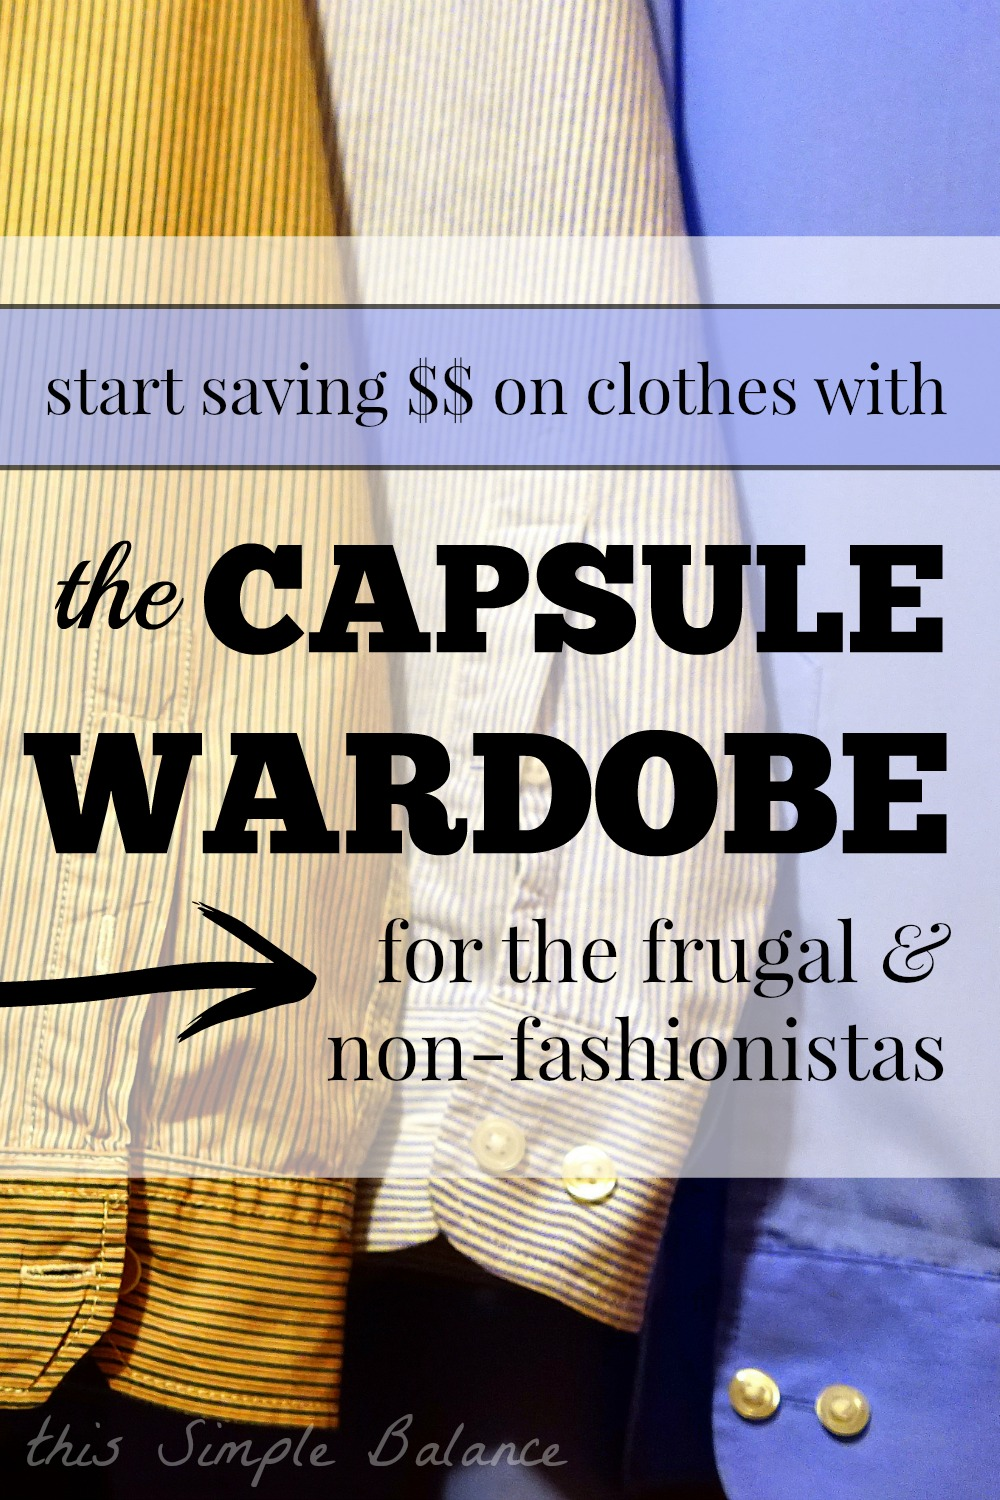 capsule wardrobe, affordable capsule wardrobe, thrifty capsule wardrobe, frugal capsule wardrobe